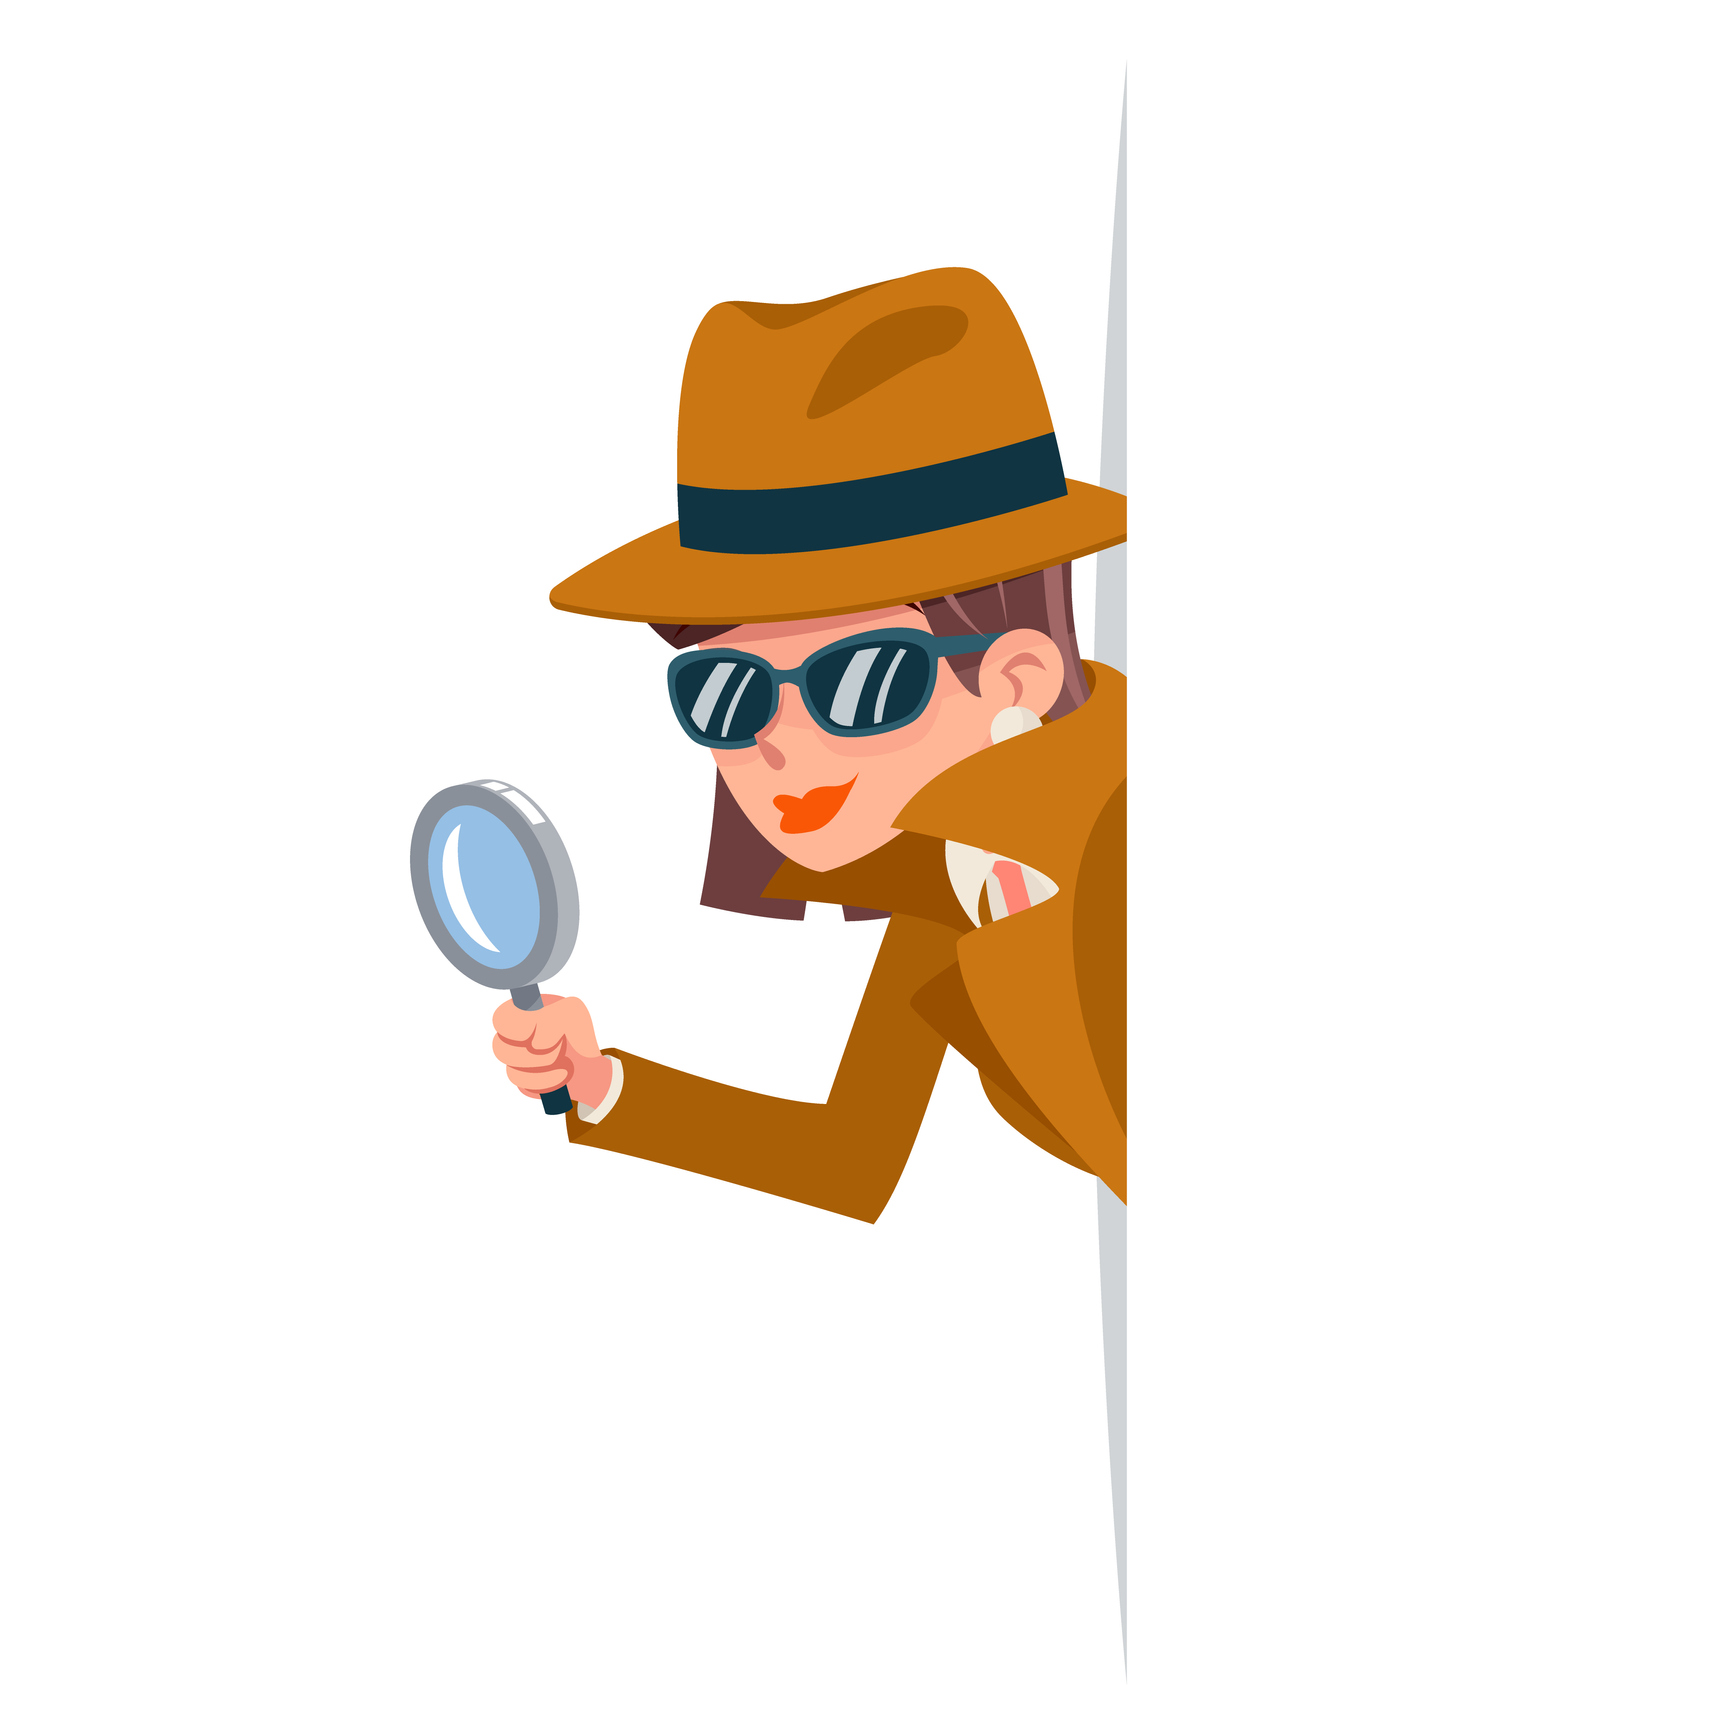 Illustration of a spy in trench coat with a magnifying glass by Meilun